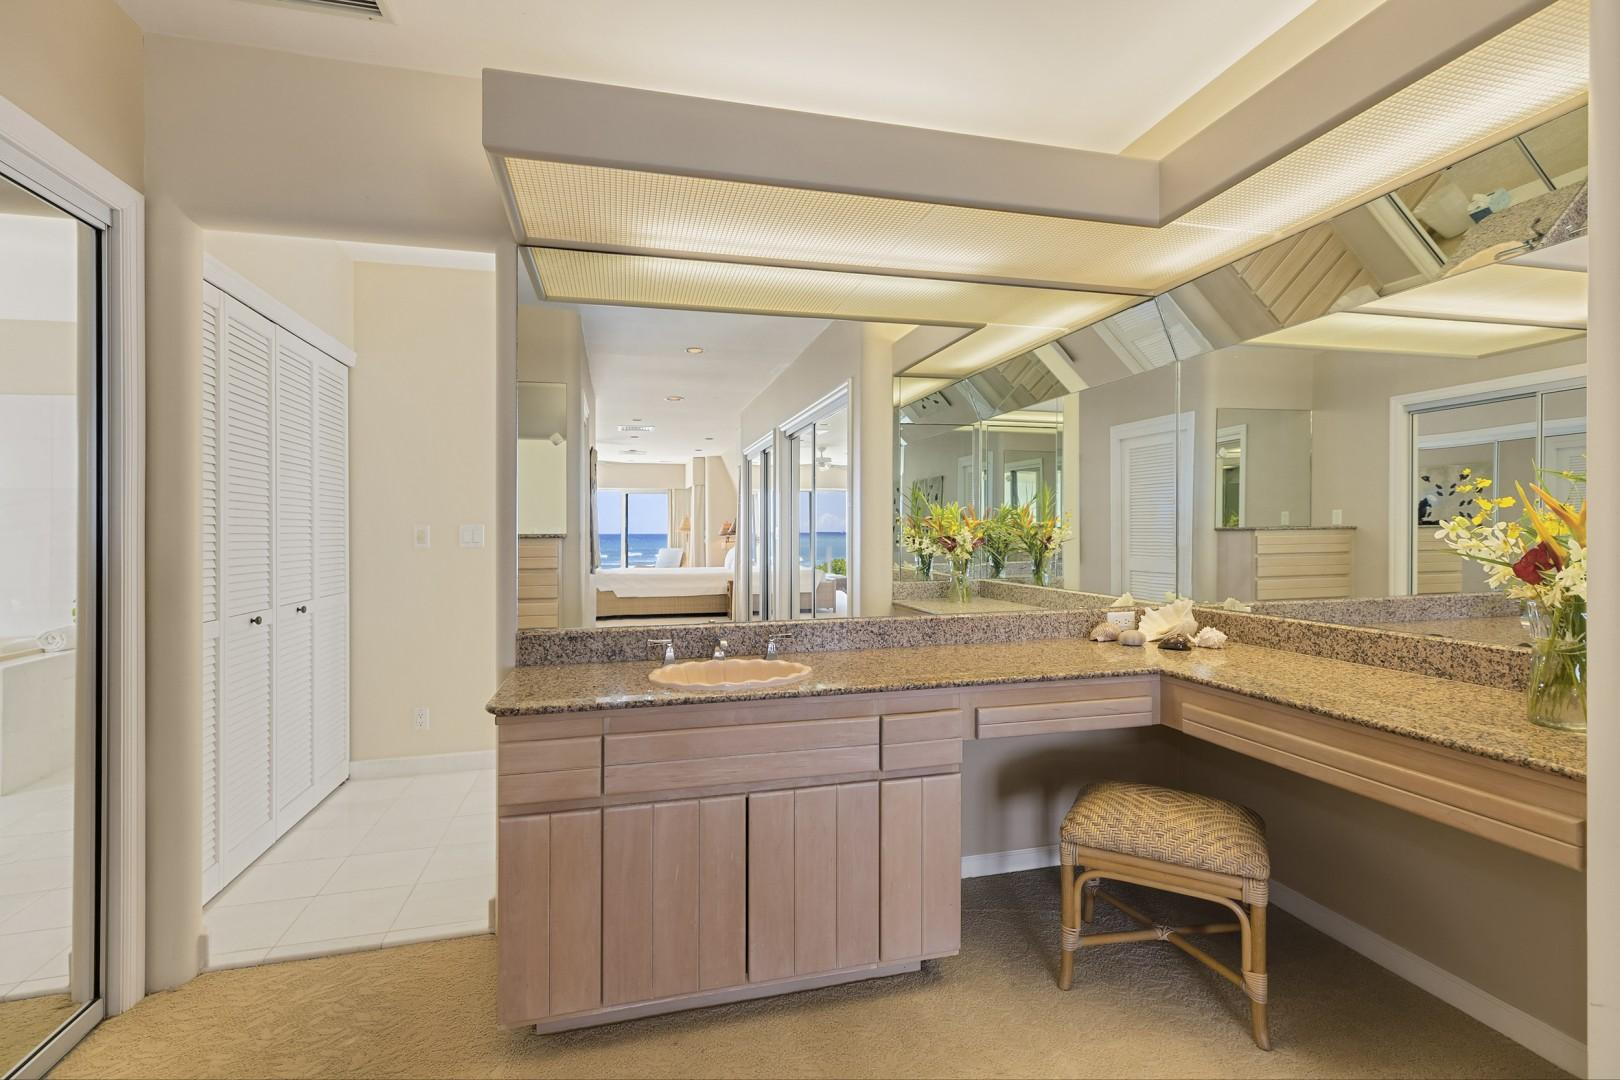 Master Suite Bathroom with vanity.